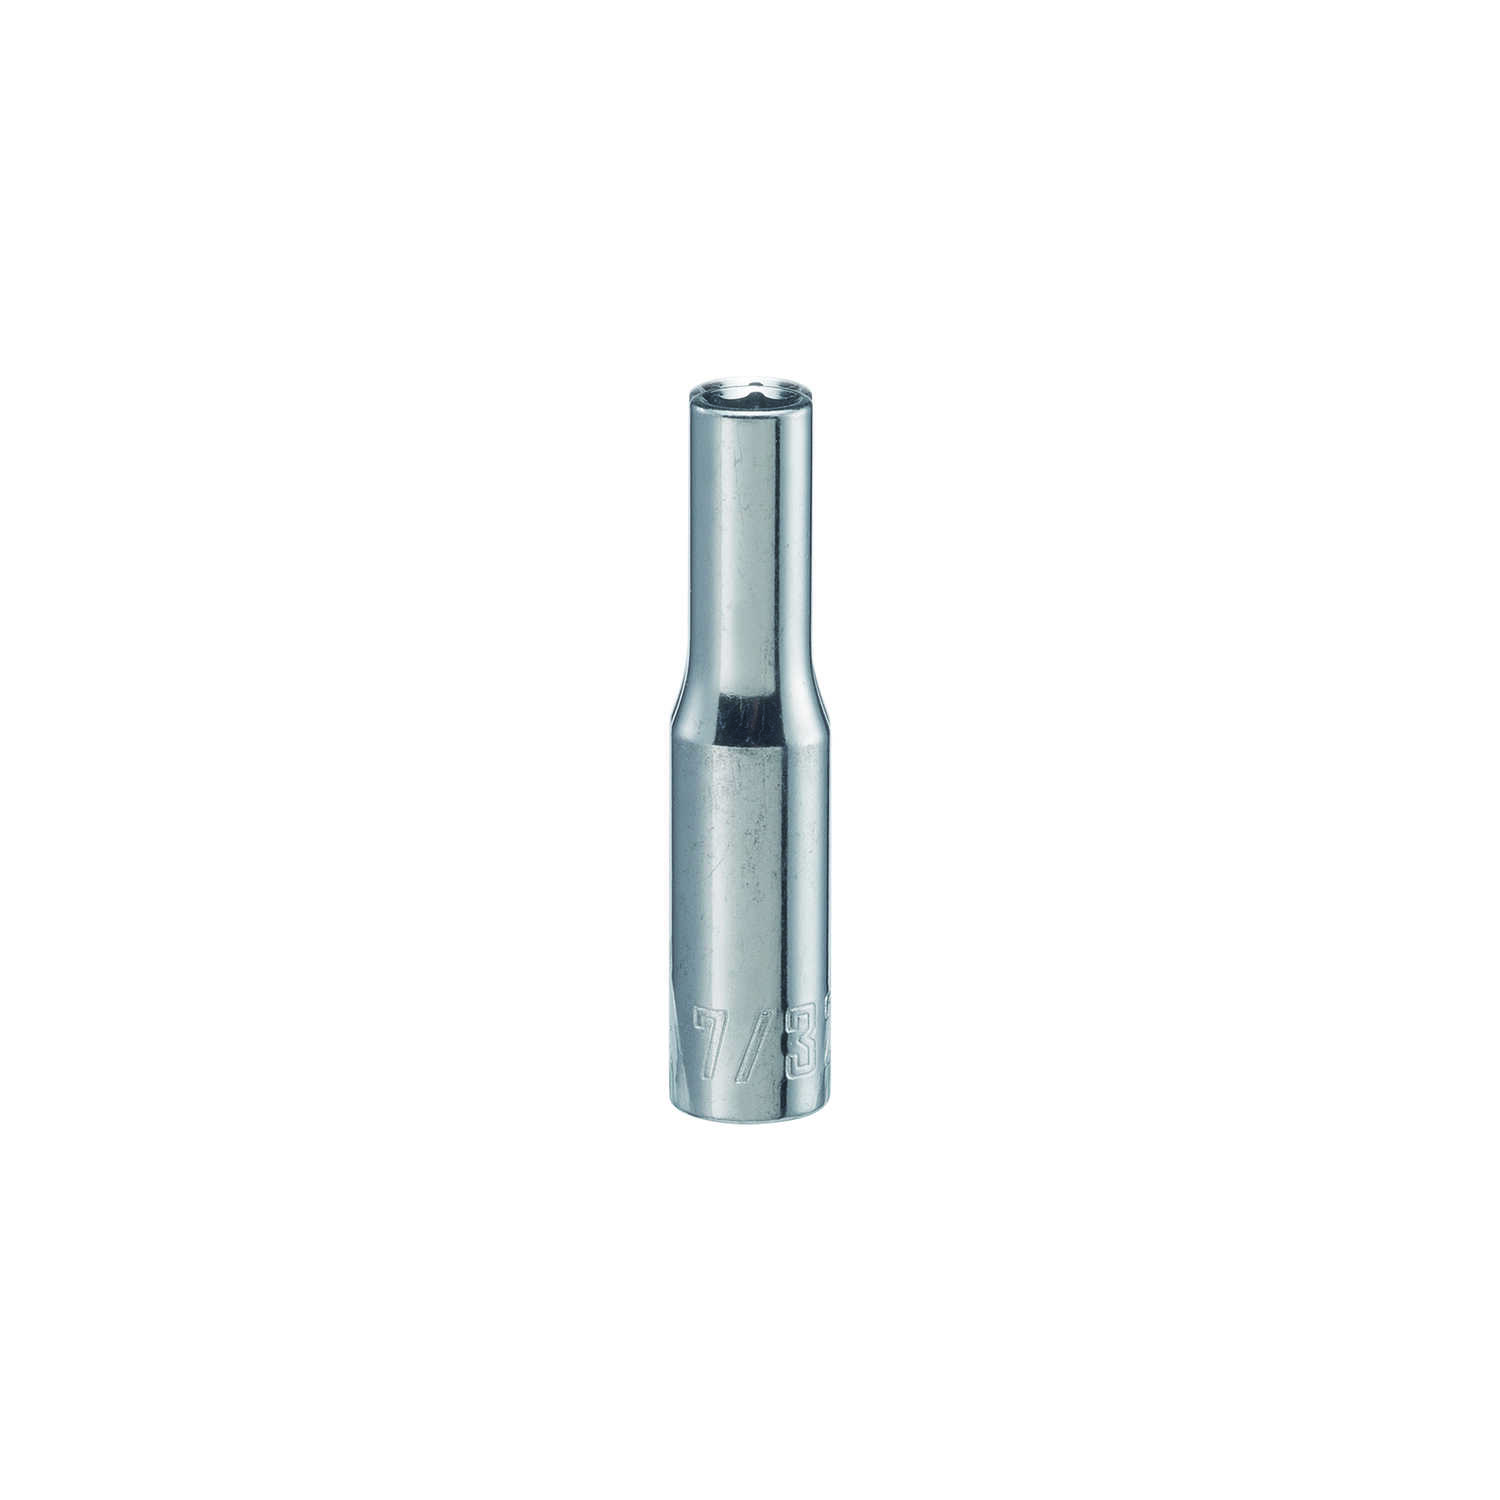 Craftsman  7/32 in.  x 1/4 in. drive  SAE  6 Point Deep  Socket  1 pc.